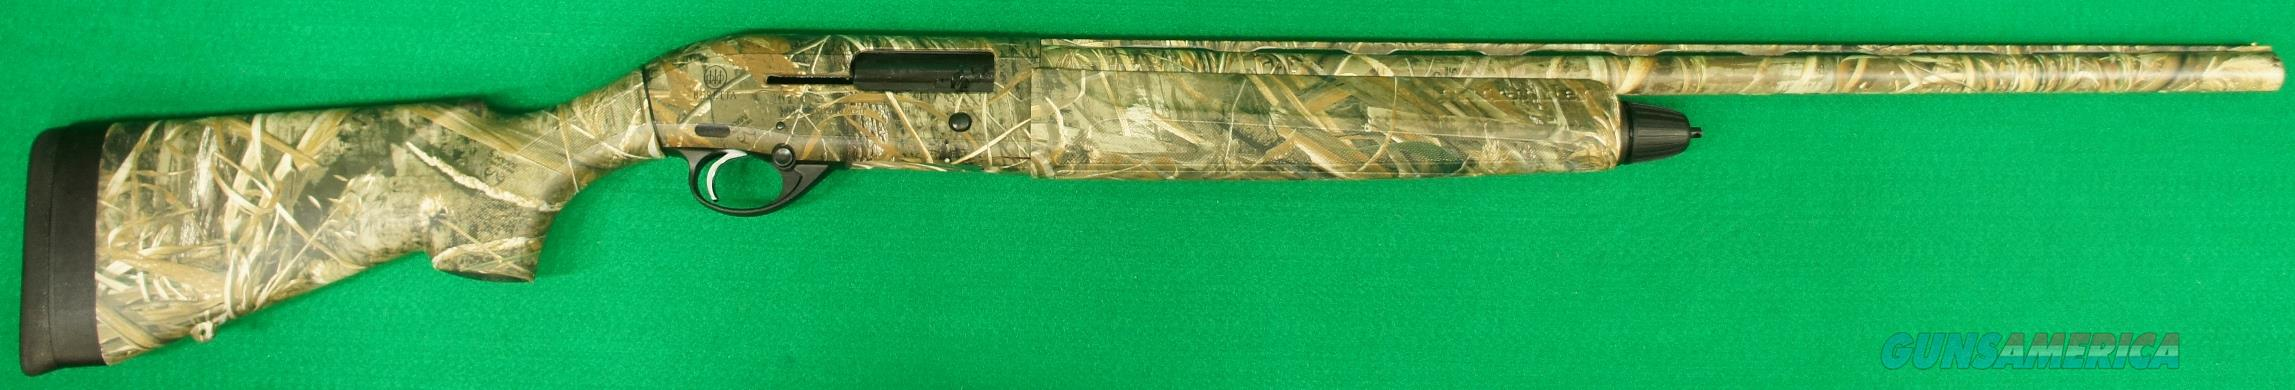 A300 Outlander Camo Max5 12Ga 28-3In J30TM18  Guns > Shotguns > Beretta Shotguns > Autoloaders > Hunting